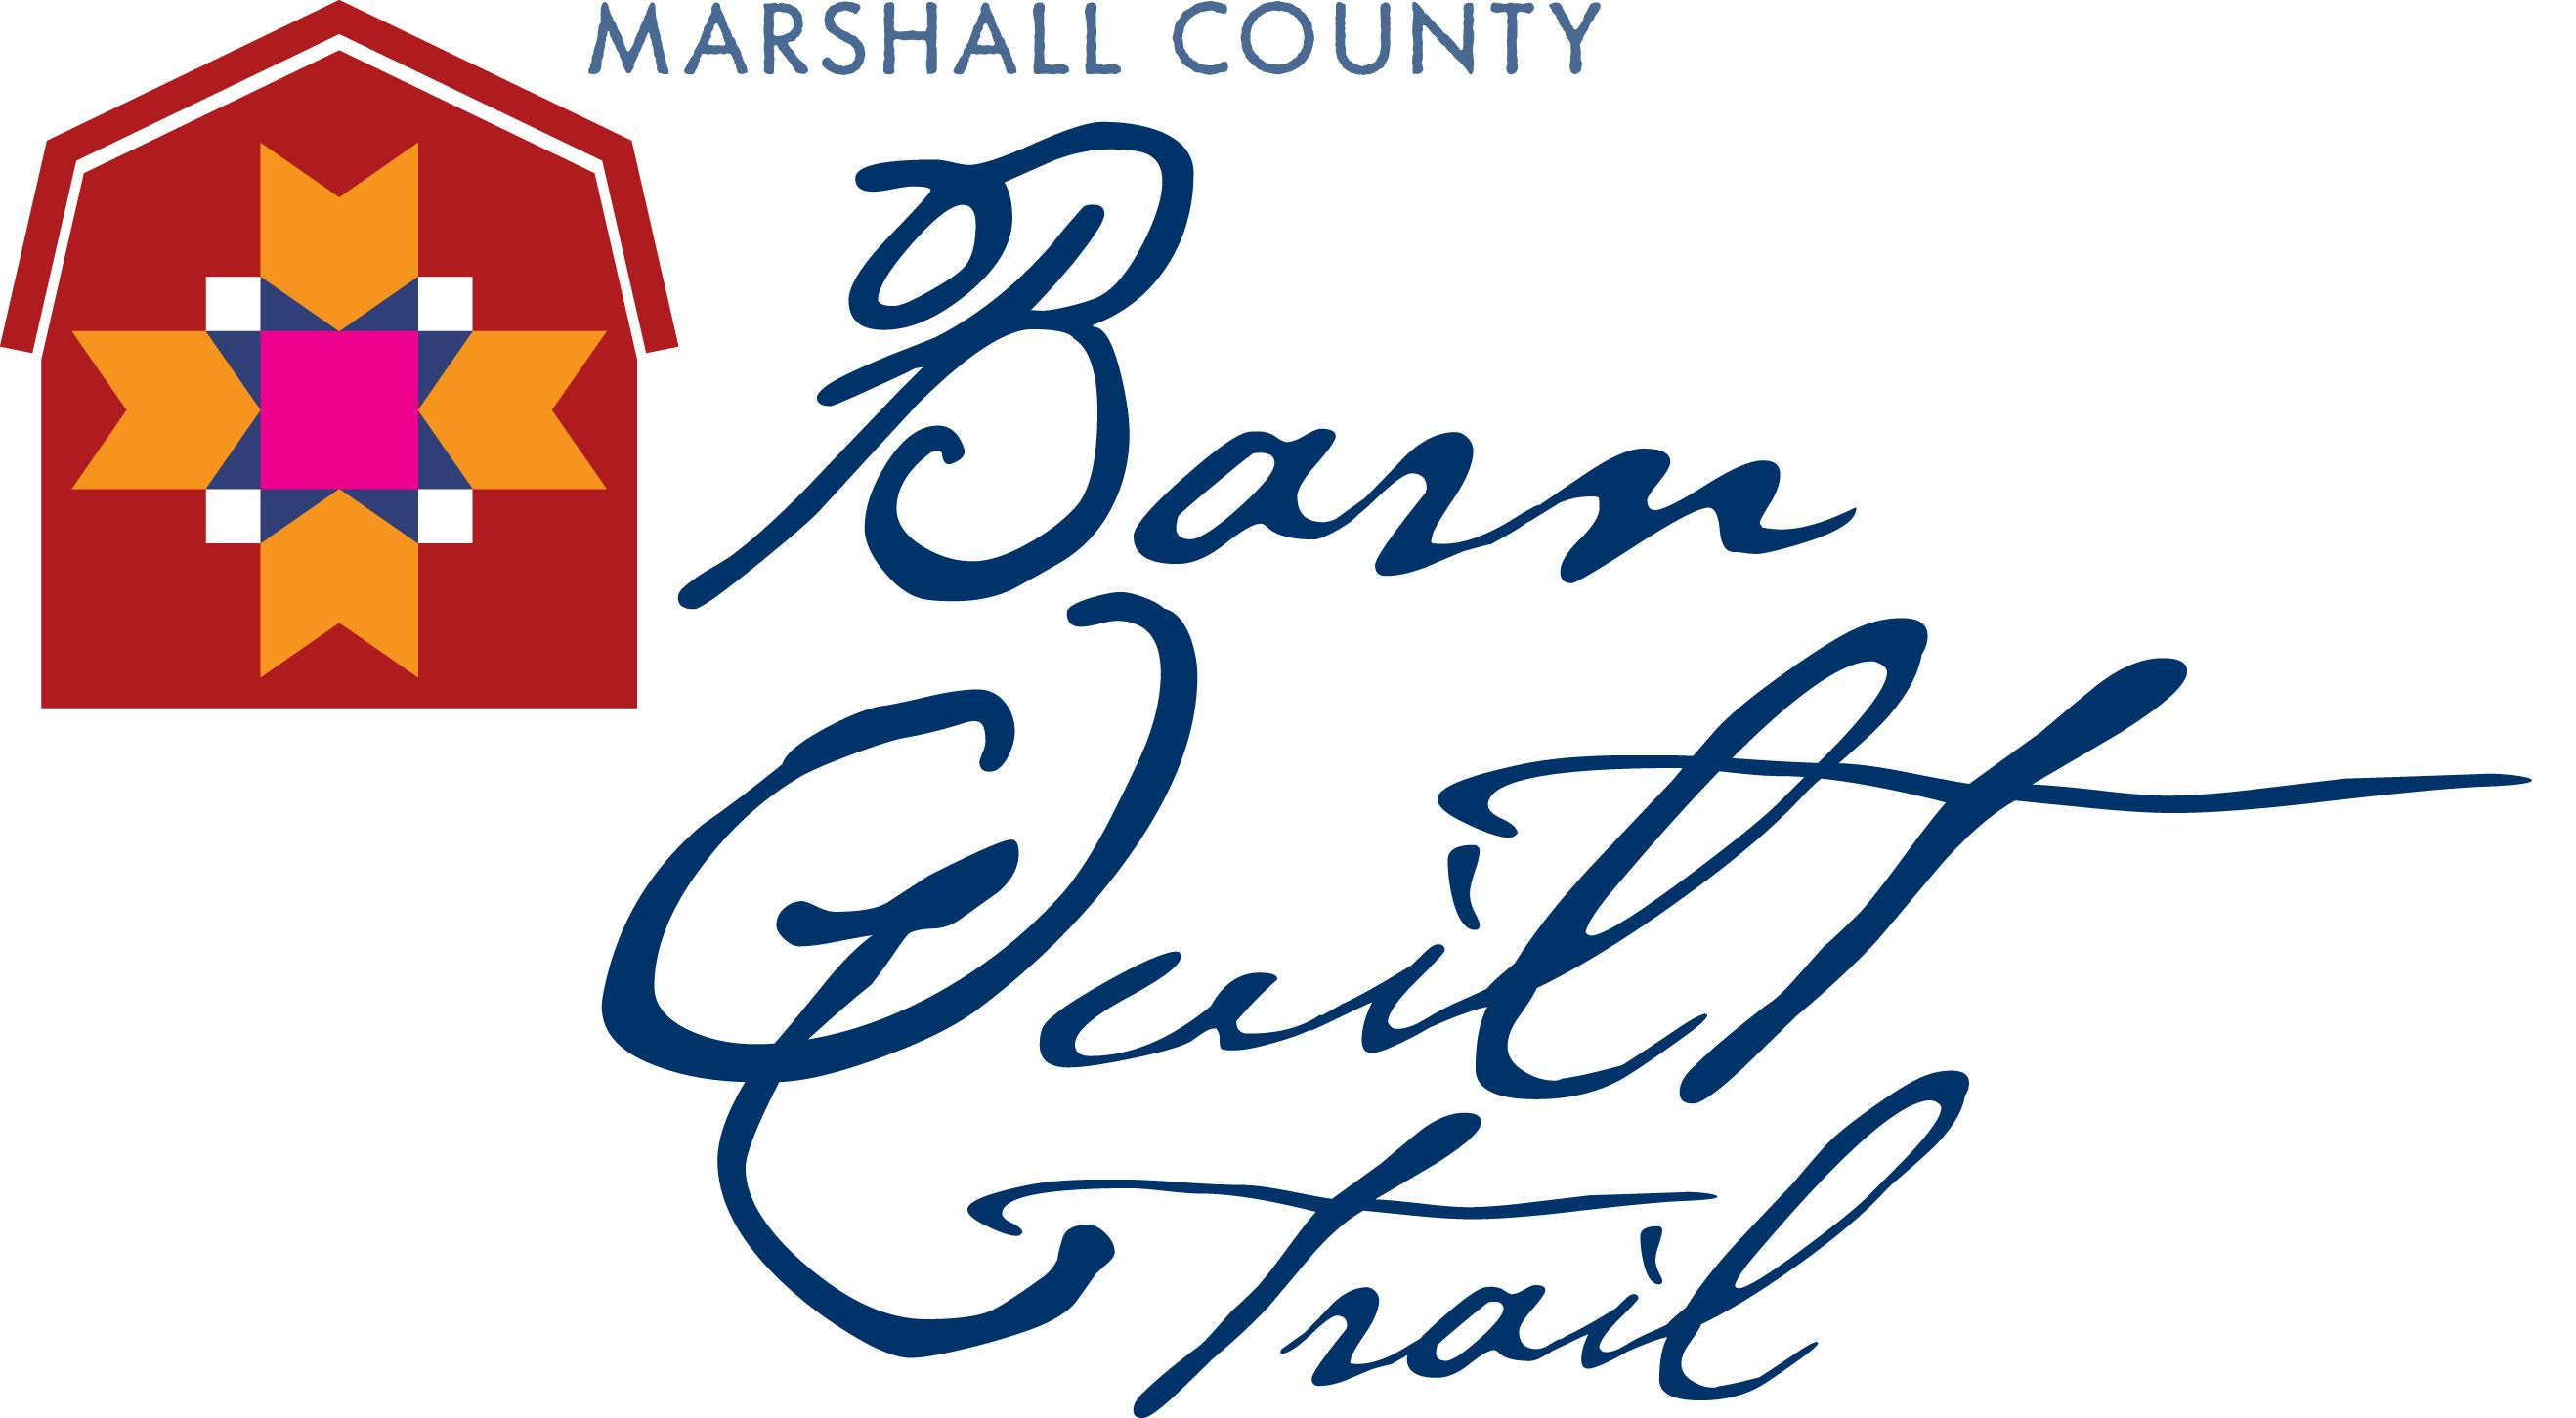 Marshall County Barn Quilt Trail, Indiana | Barn quilt ...